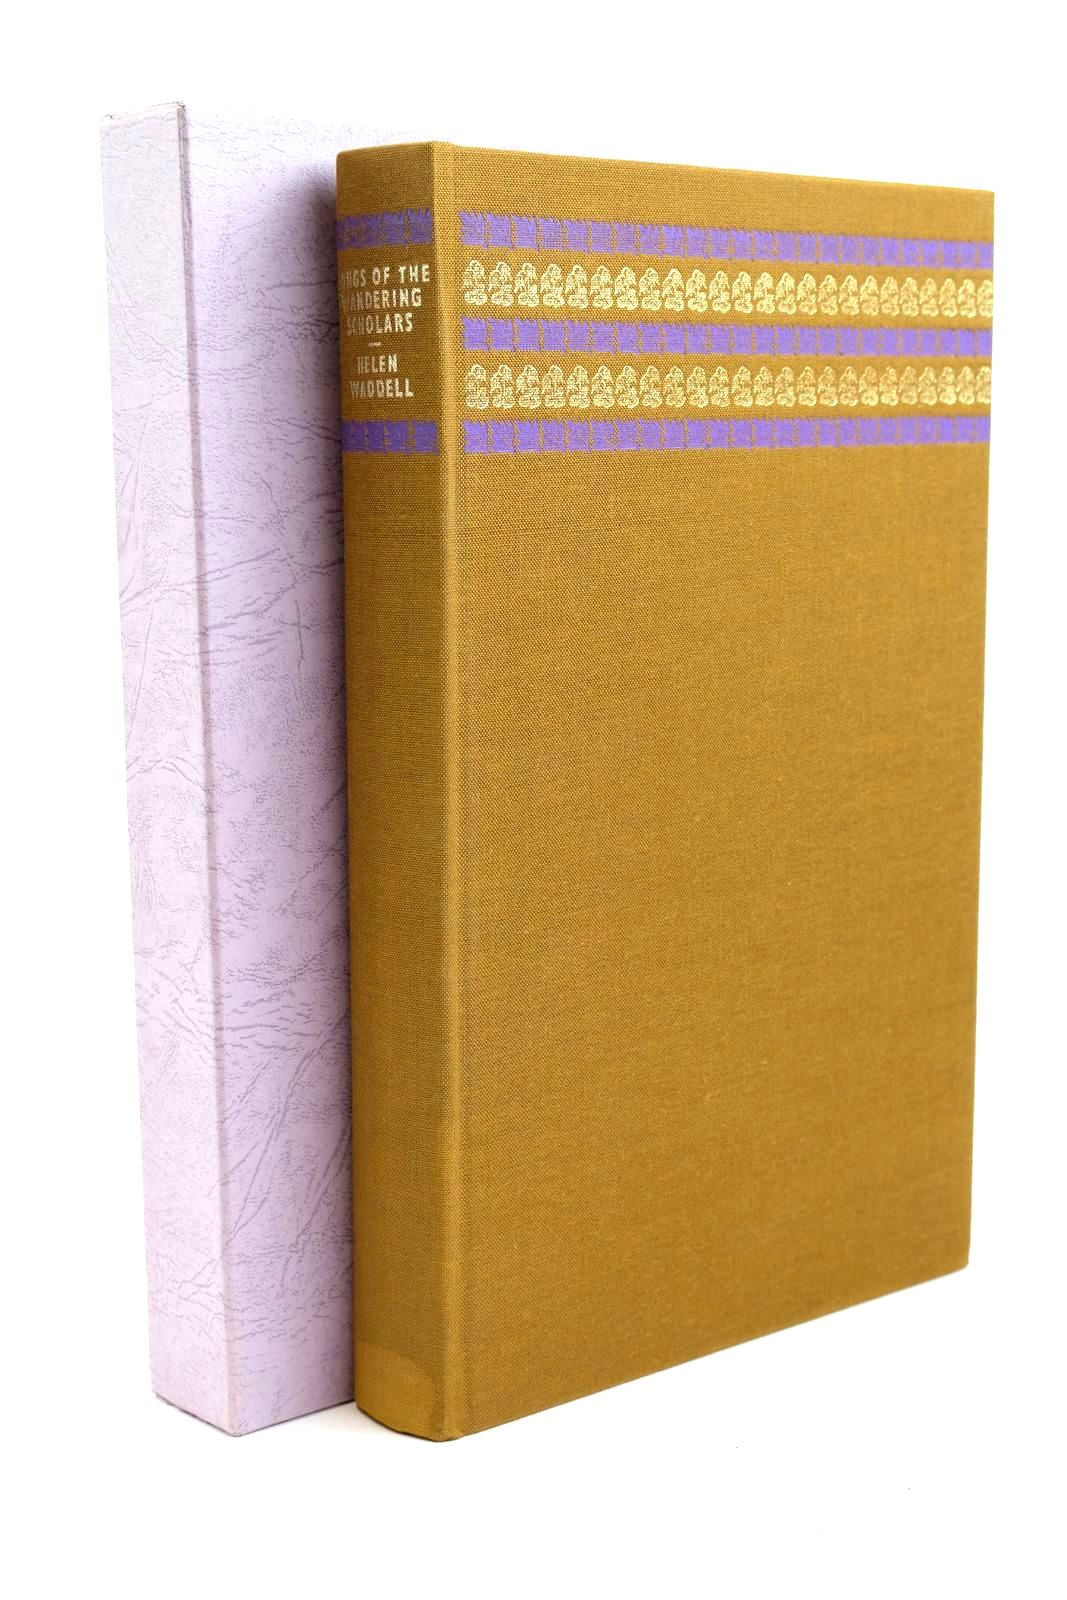 Photo of SONGS OF THE WANDERING SCHOLARS written by Waddell, Helen Corrigan, Dame F. illustrated by Freeman, Joan published by Folio Society (STOCK CODE: 1321554)  for sale by Stella & Rose's Books